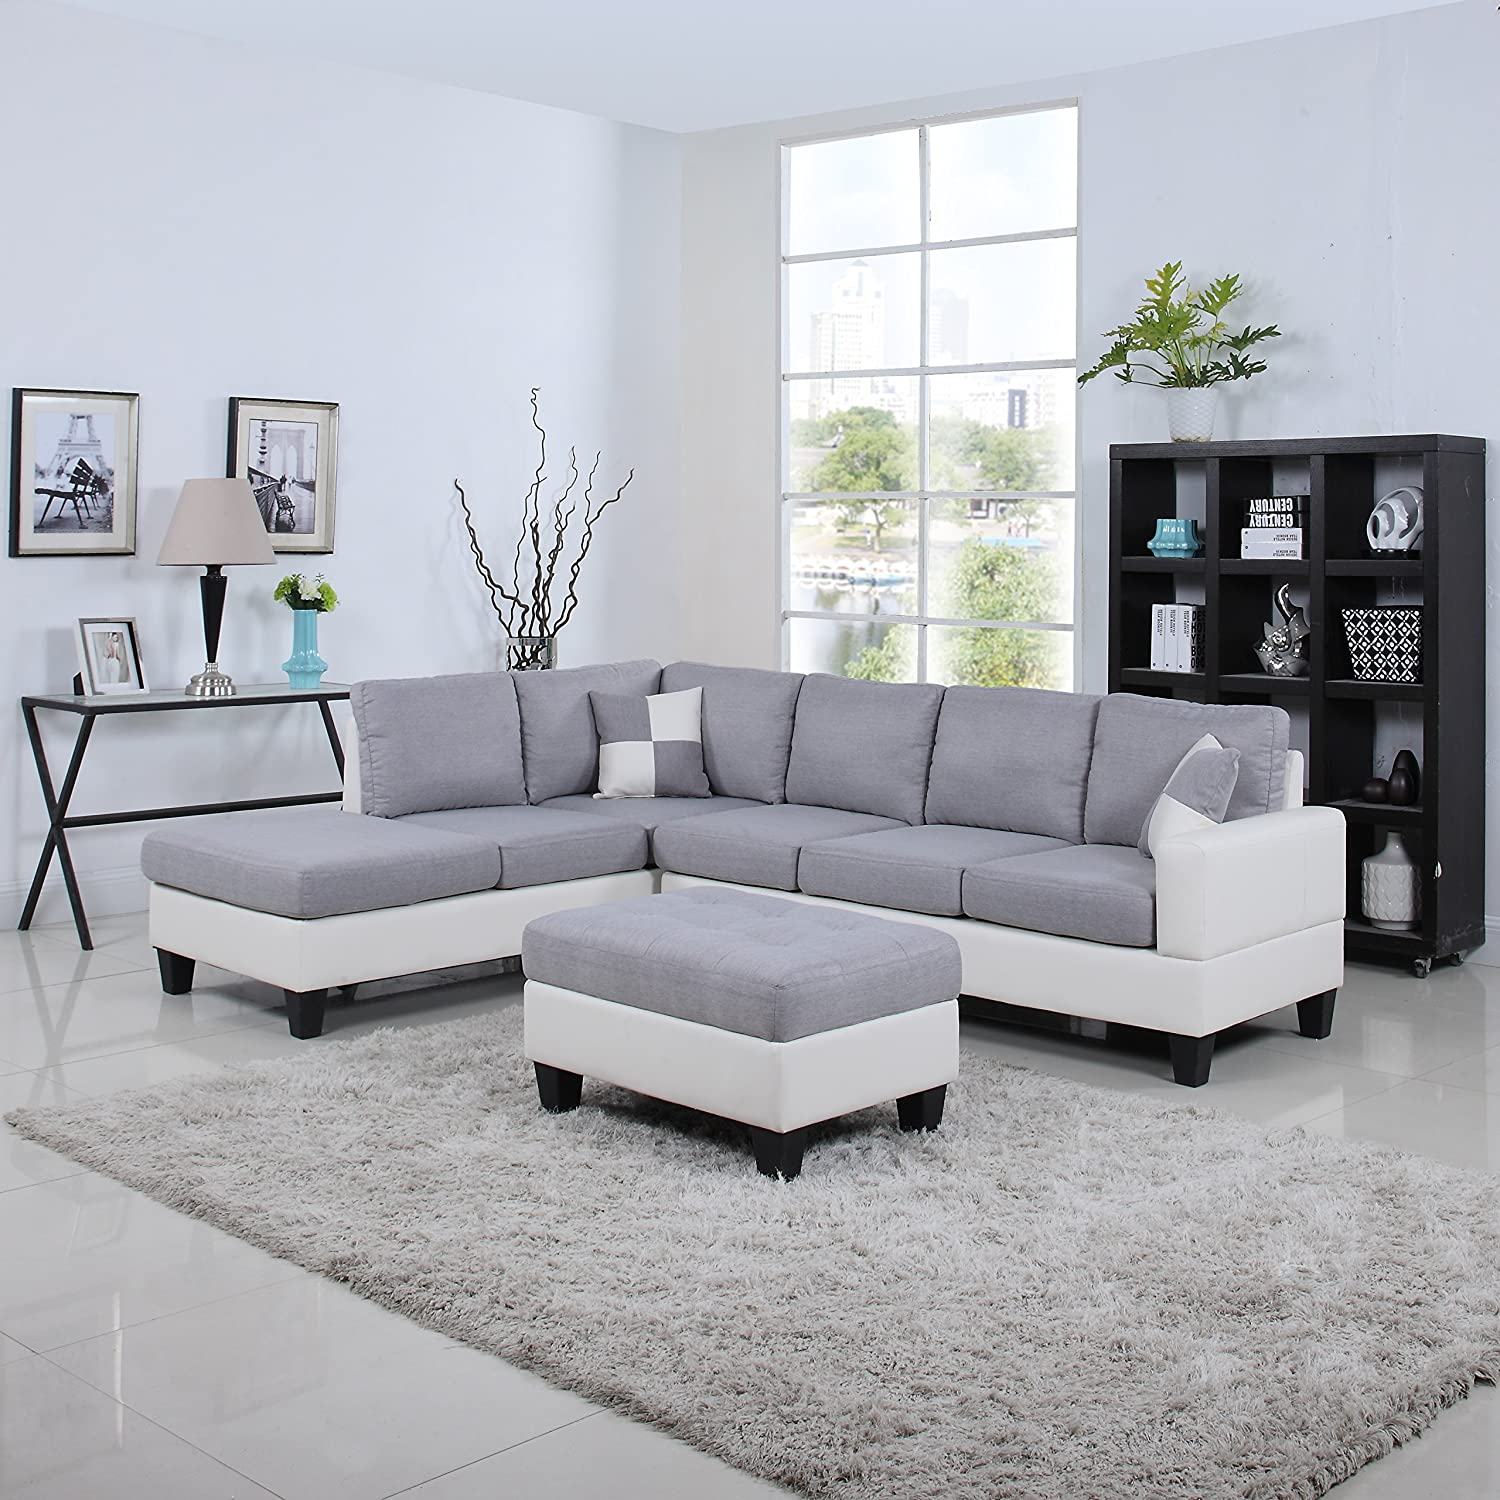 amazoncom classic two tone large linen fabric and bonded leather livingroom sectional sofa (white  light grey) kitchen  dining. amazoncom classic two tone large linen fabric and bonded leather